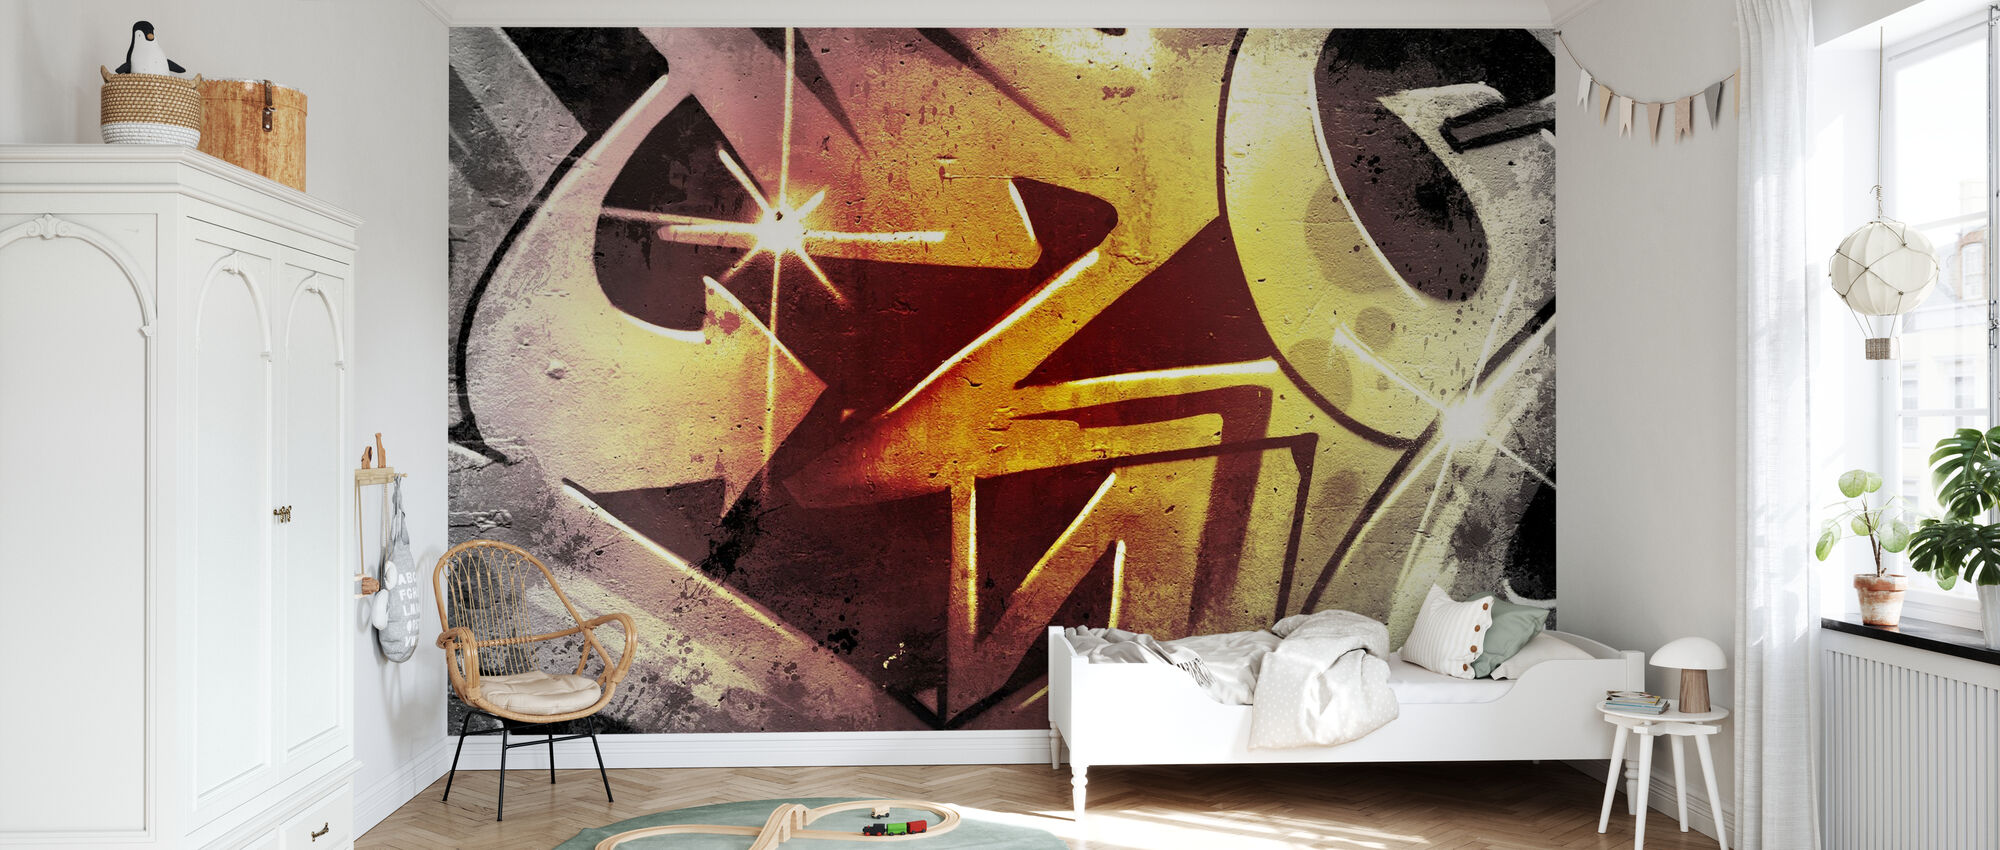 Graffiti over Old Dirty Wall - Wallpaper - Kids Room